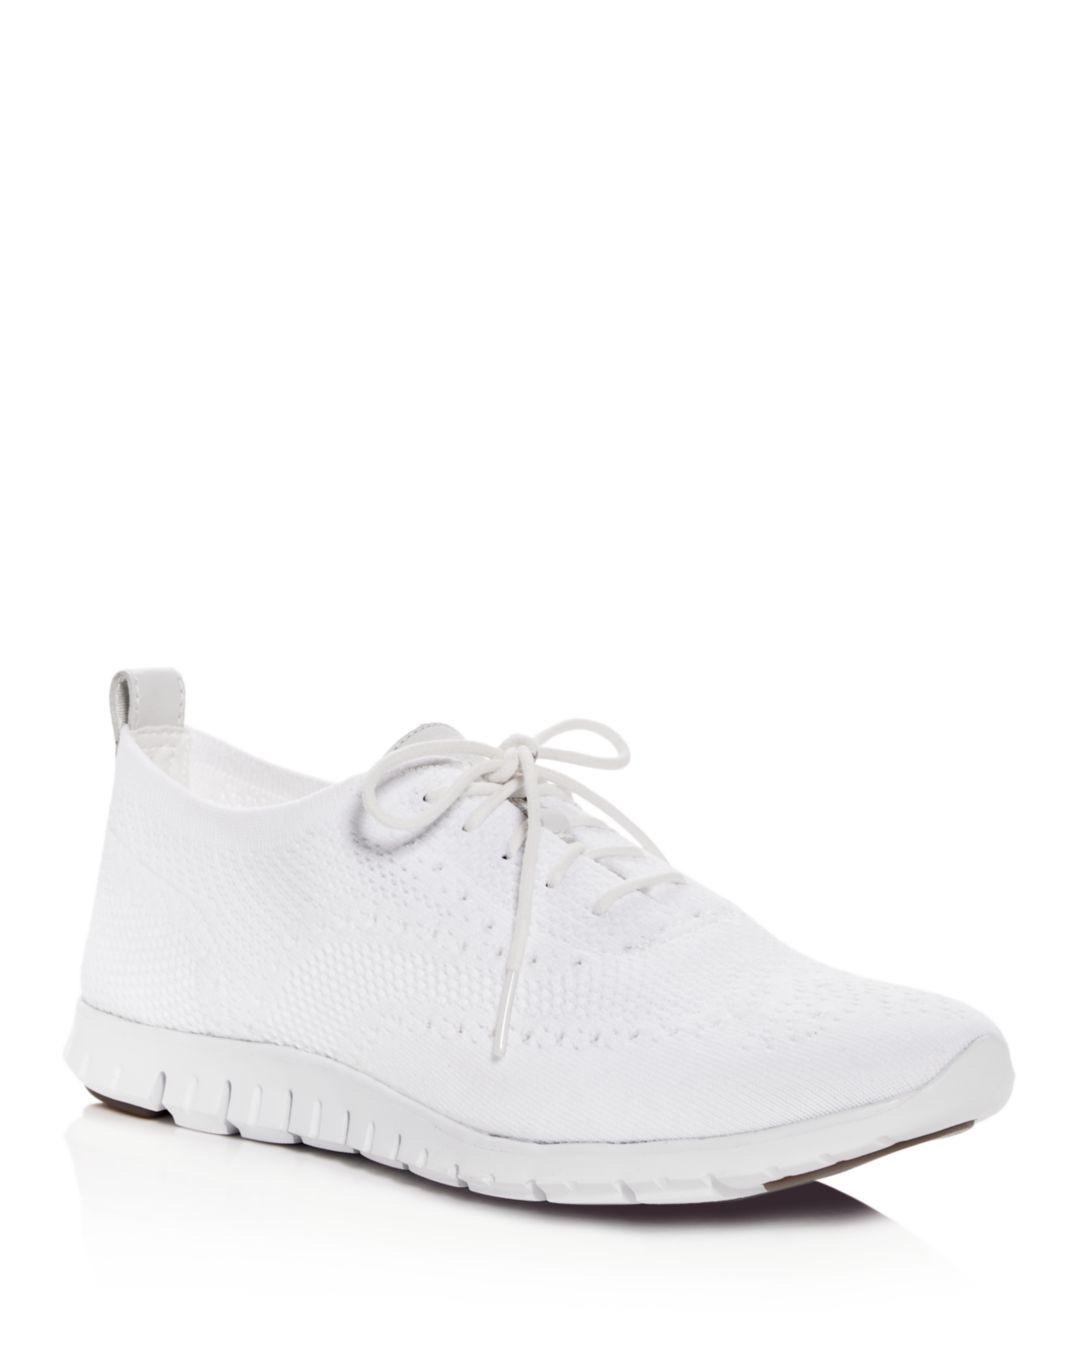 7a46b72bdb Cole Haan - White Women's Zerogrand Stitchlite Knit Lace - Up Oxford  Sneakers - Lyst. View fullscreen